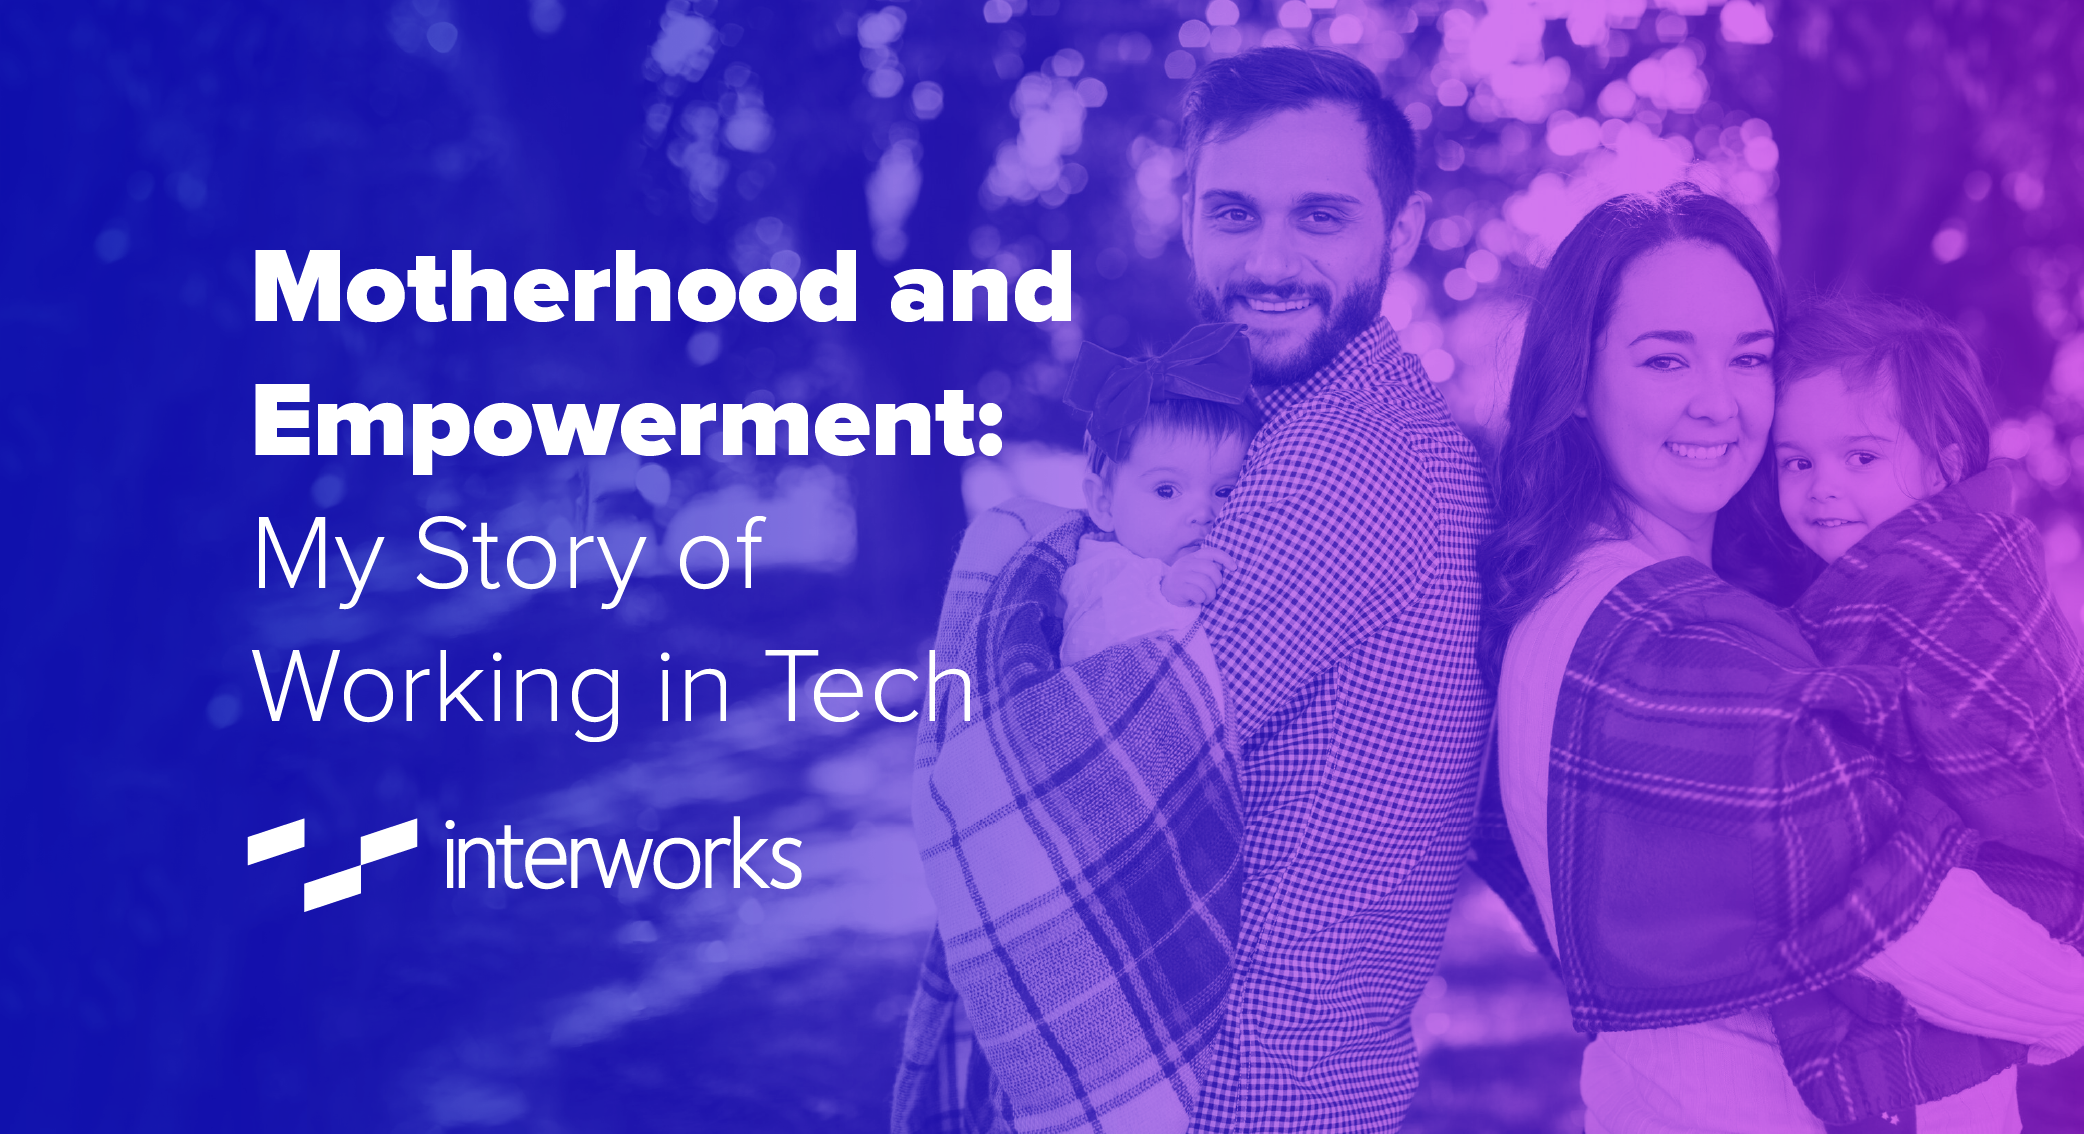 Motherhood and Empowerment: My Story of Working in Tech